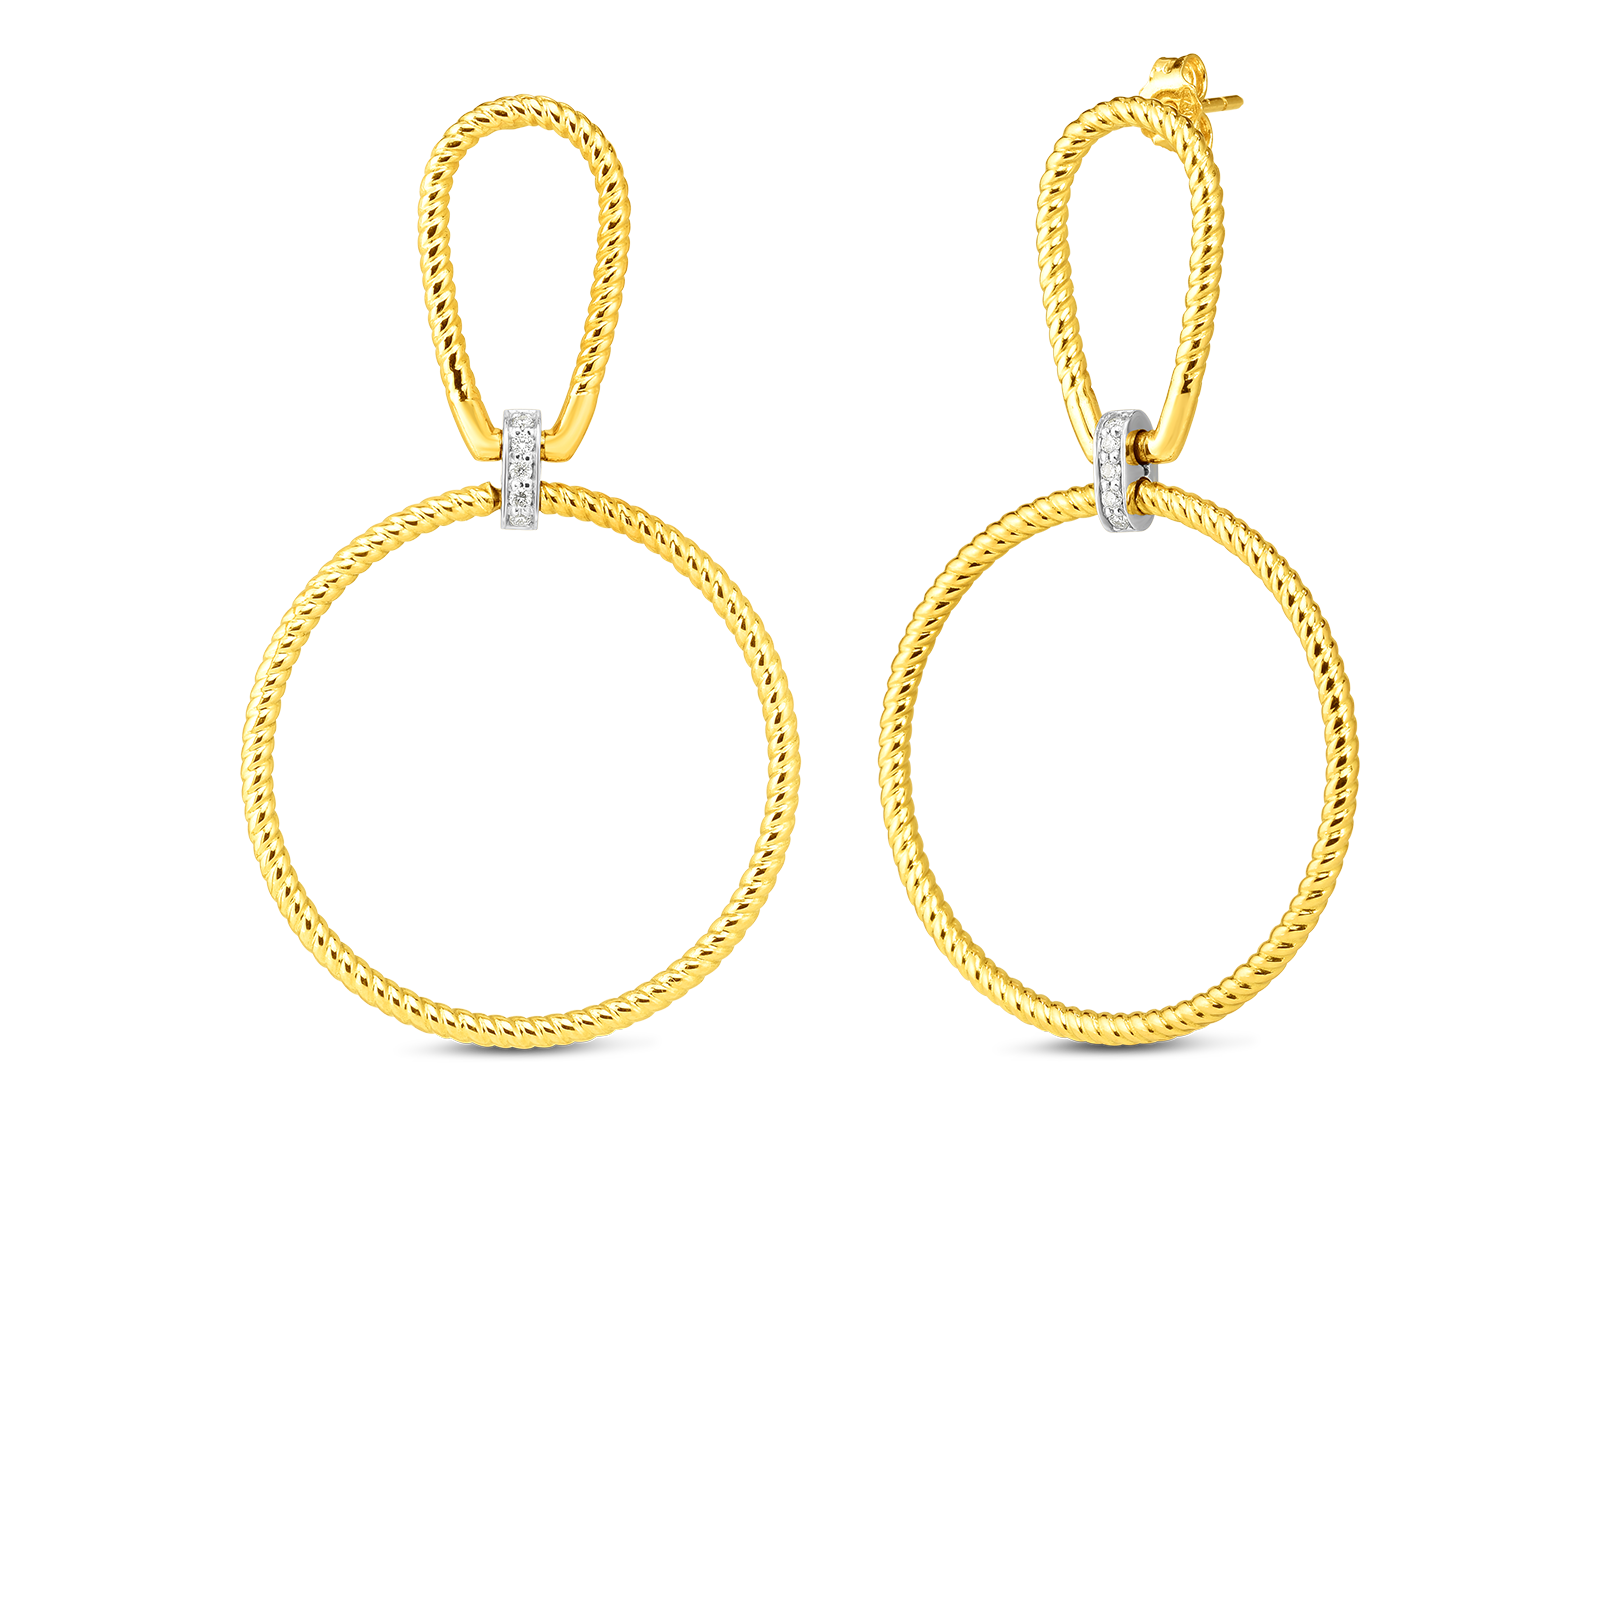 Classica Parisienne 18K Two-Tone Twisted Stirrup and Circle Drop Diamond Earrings